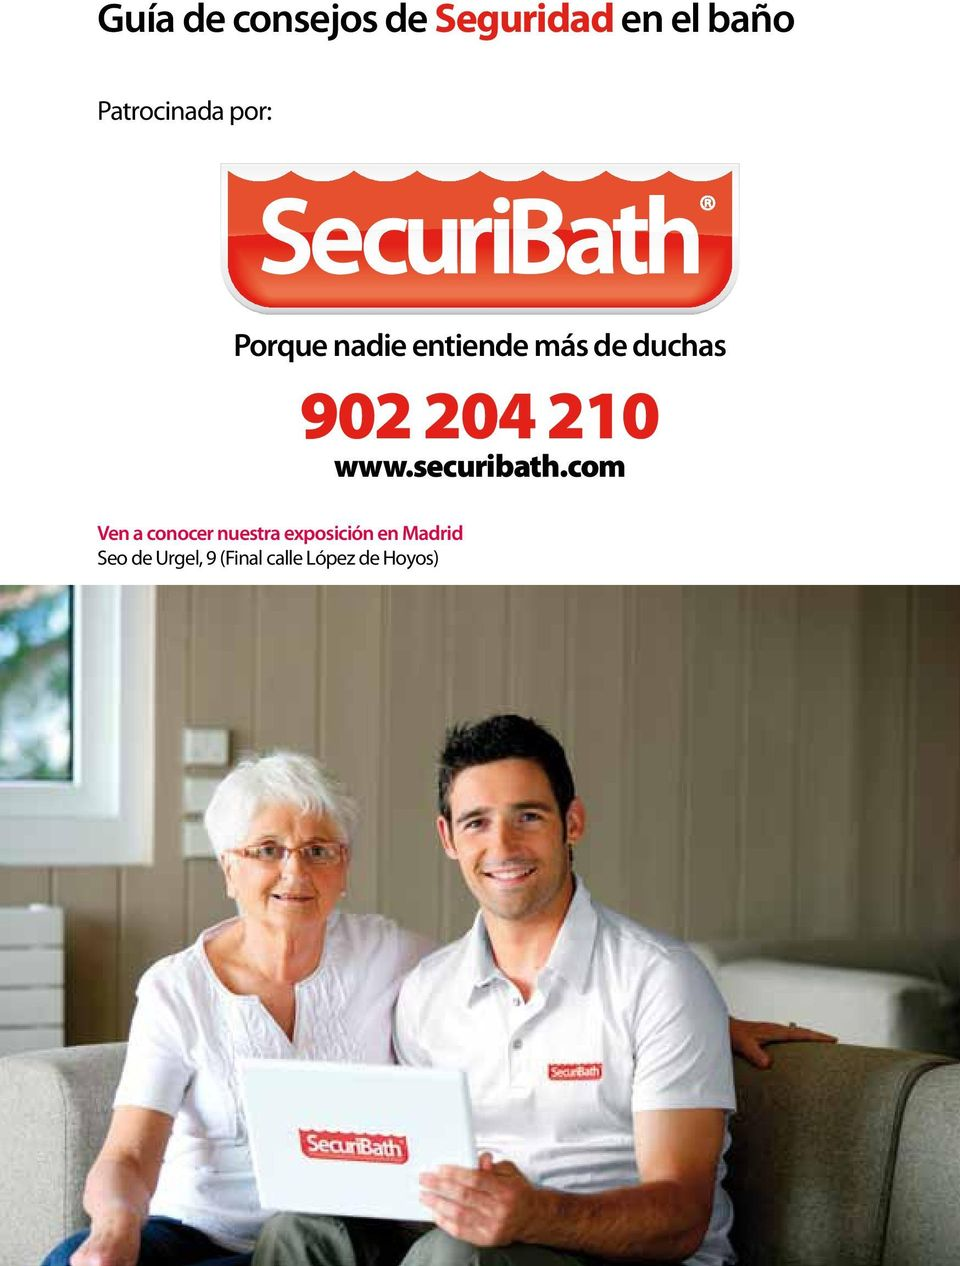 www.securibath.